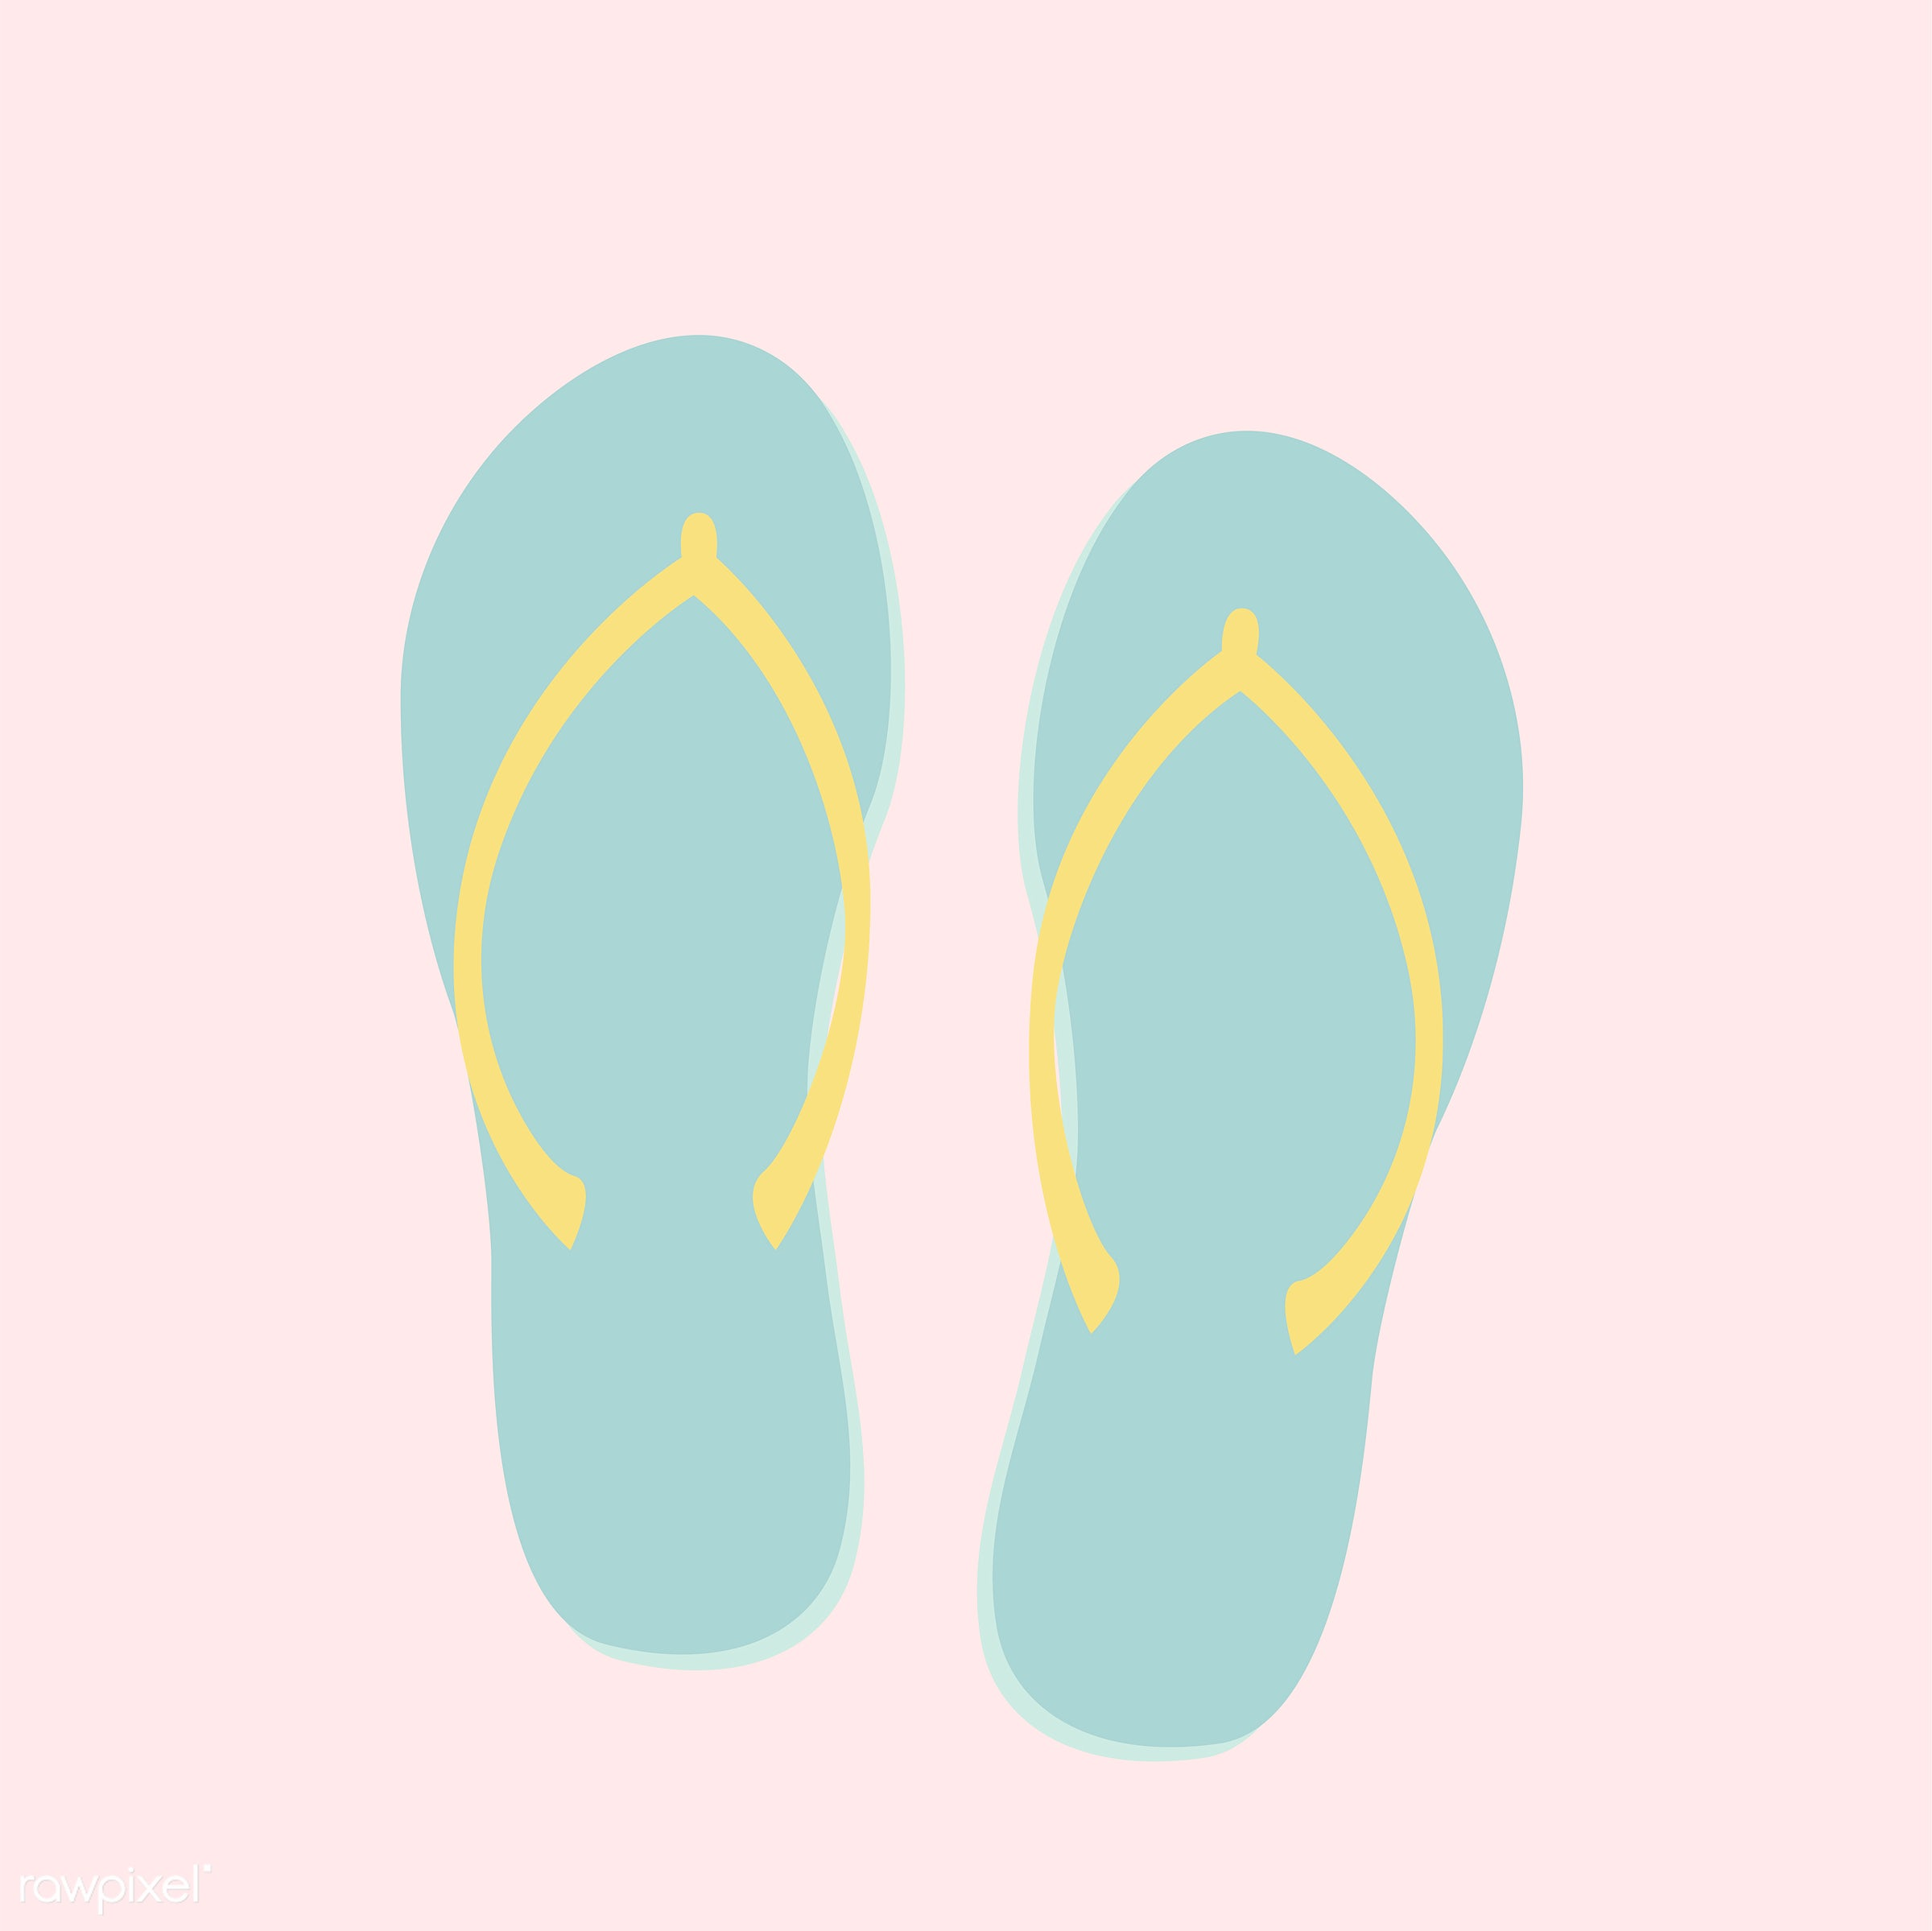 vector, illustration, graphic, cute, sweet, girly, pastel, flipflops, beach, slippers, isolated, summer